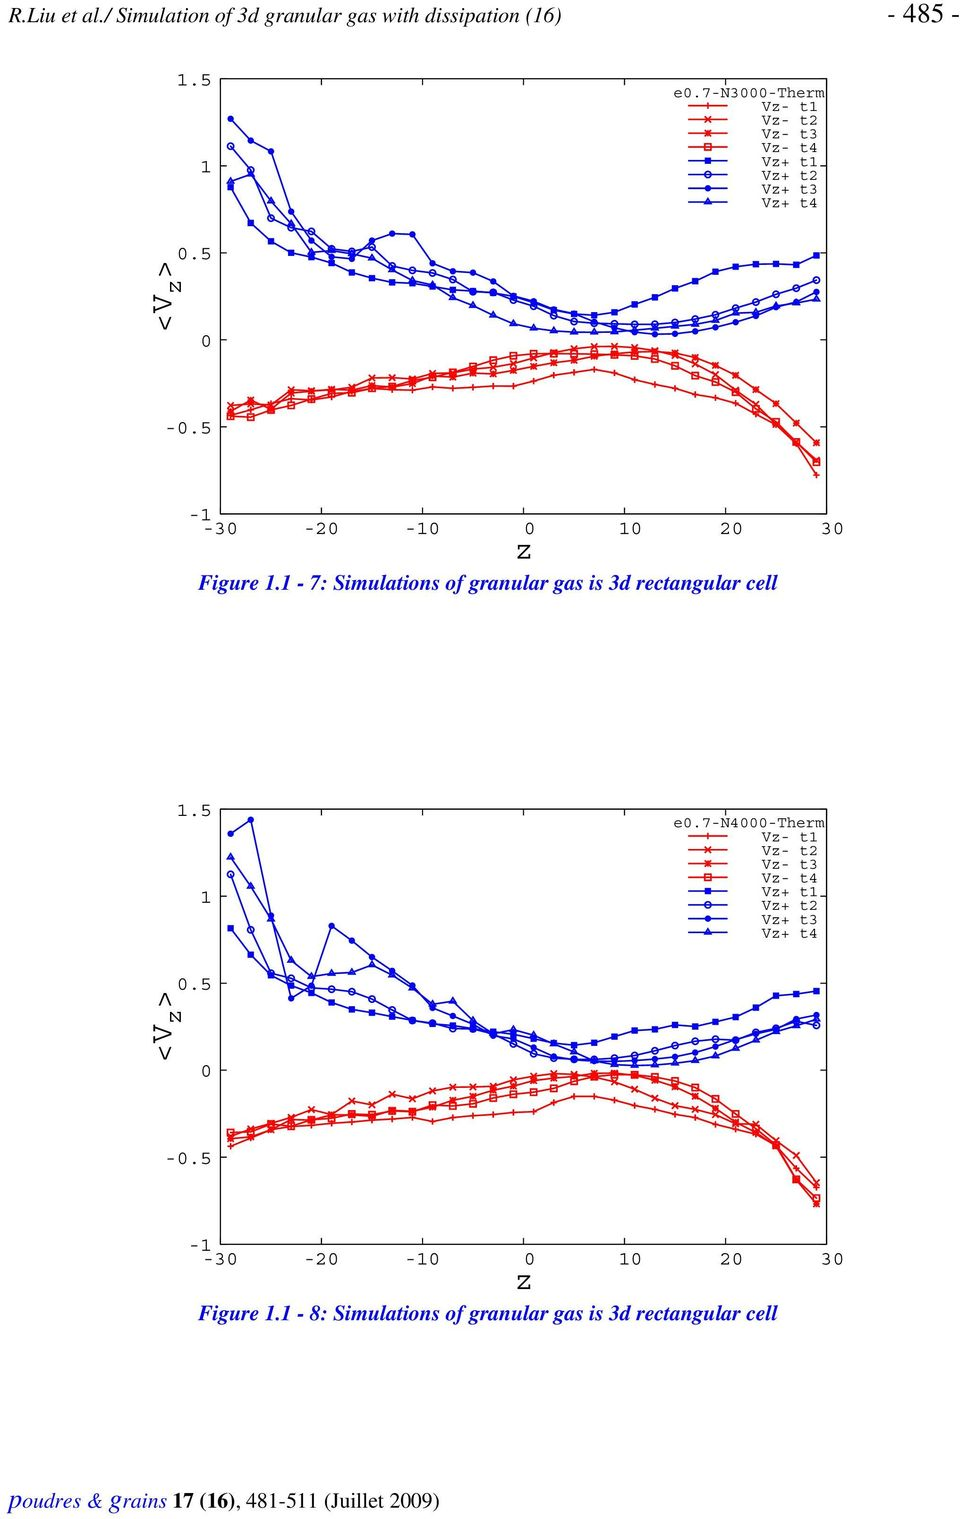 - 7: Simulations of granular gas is 3d rectangular cell.5 e.